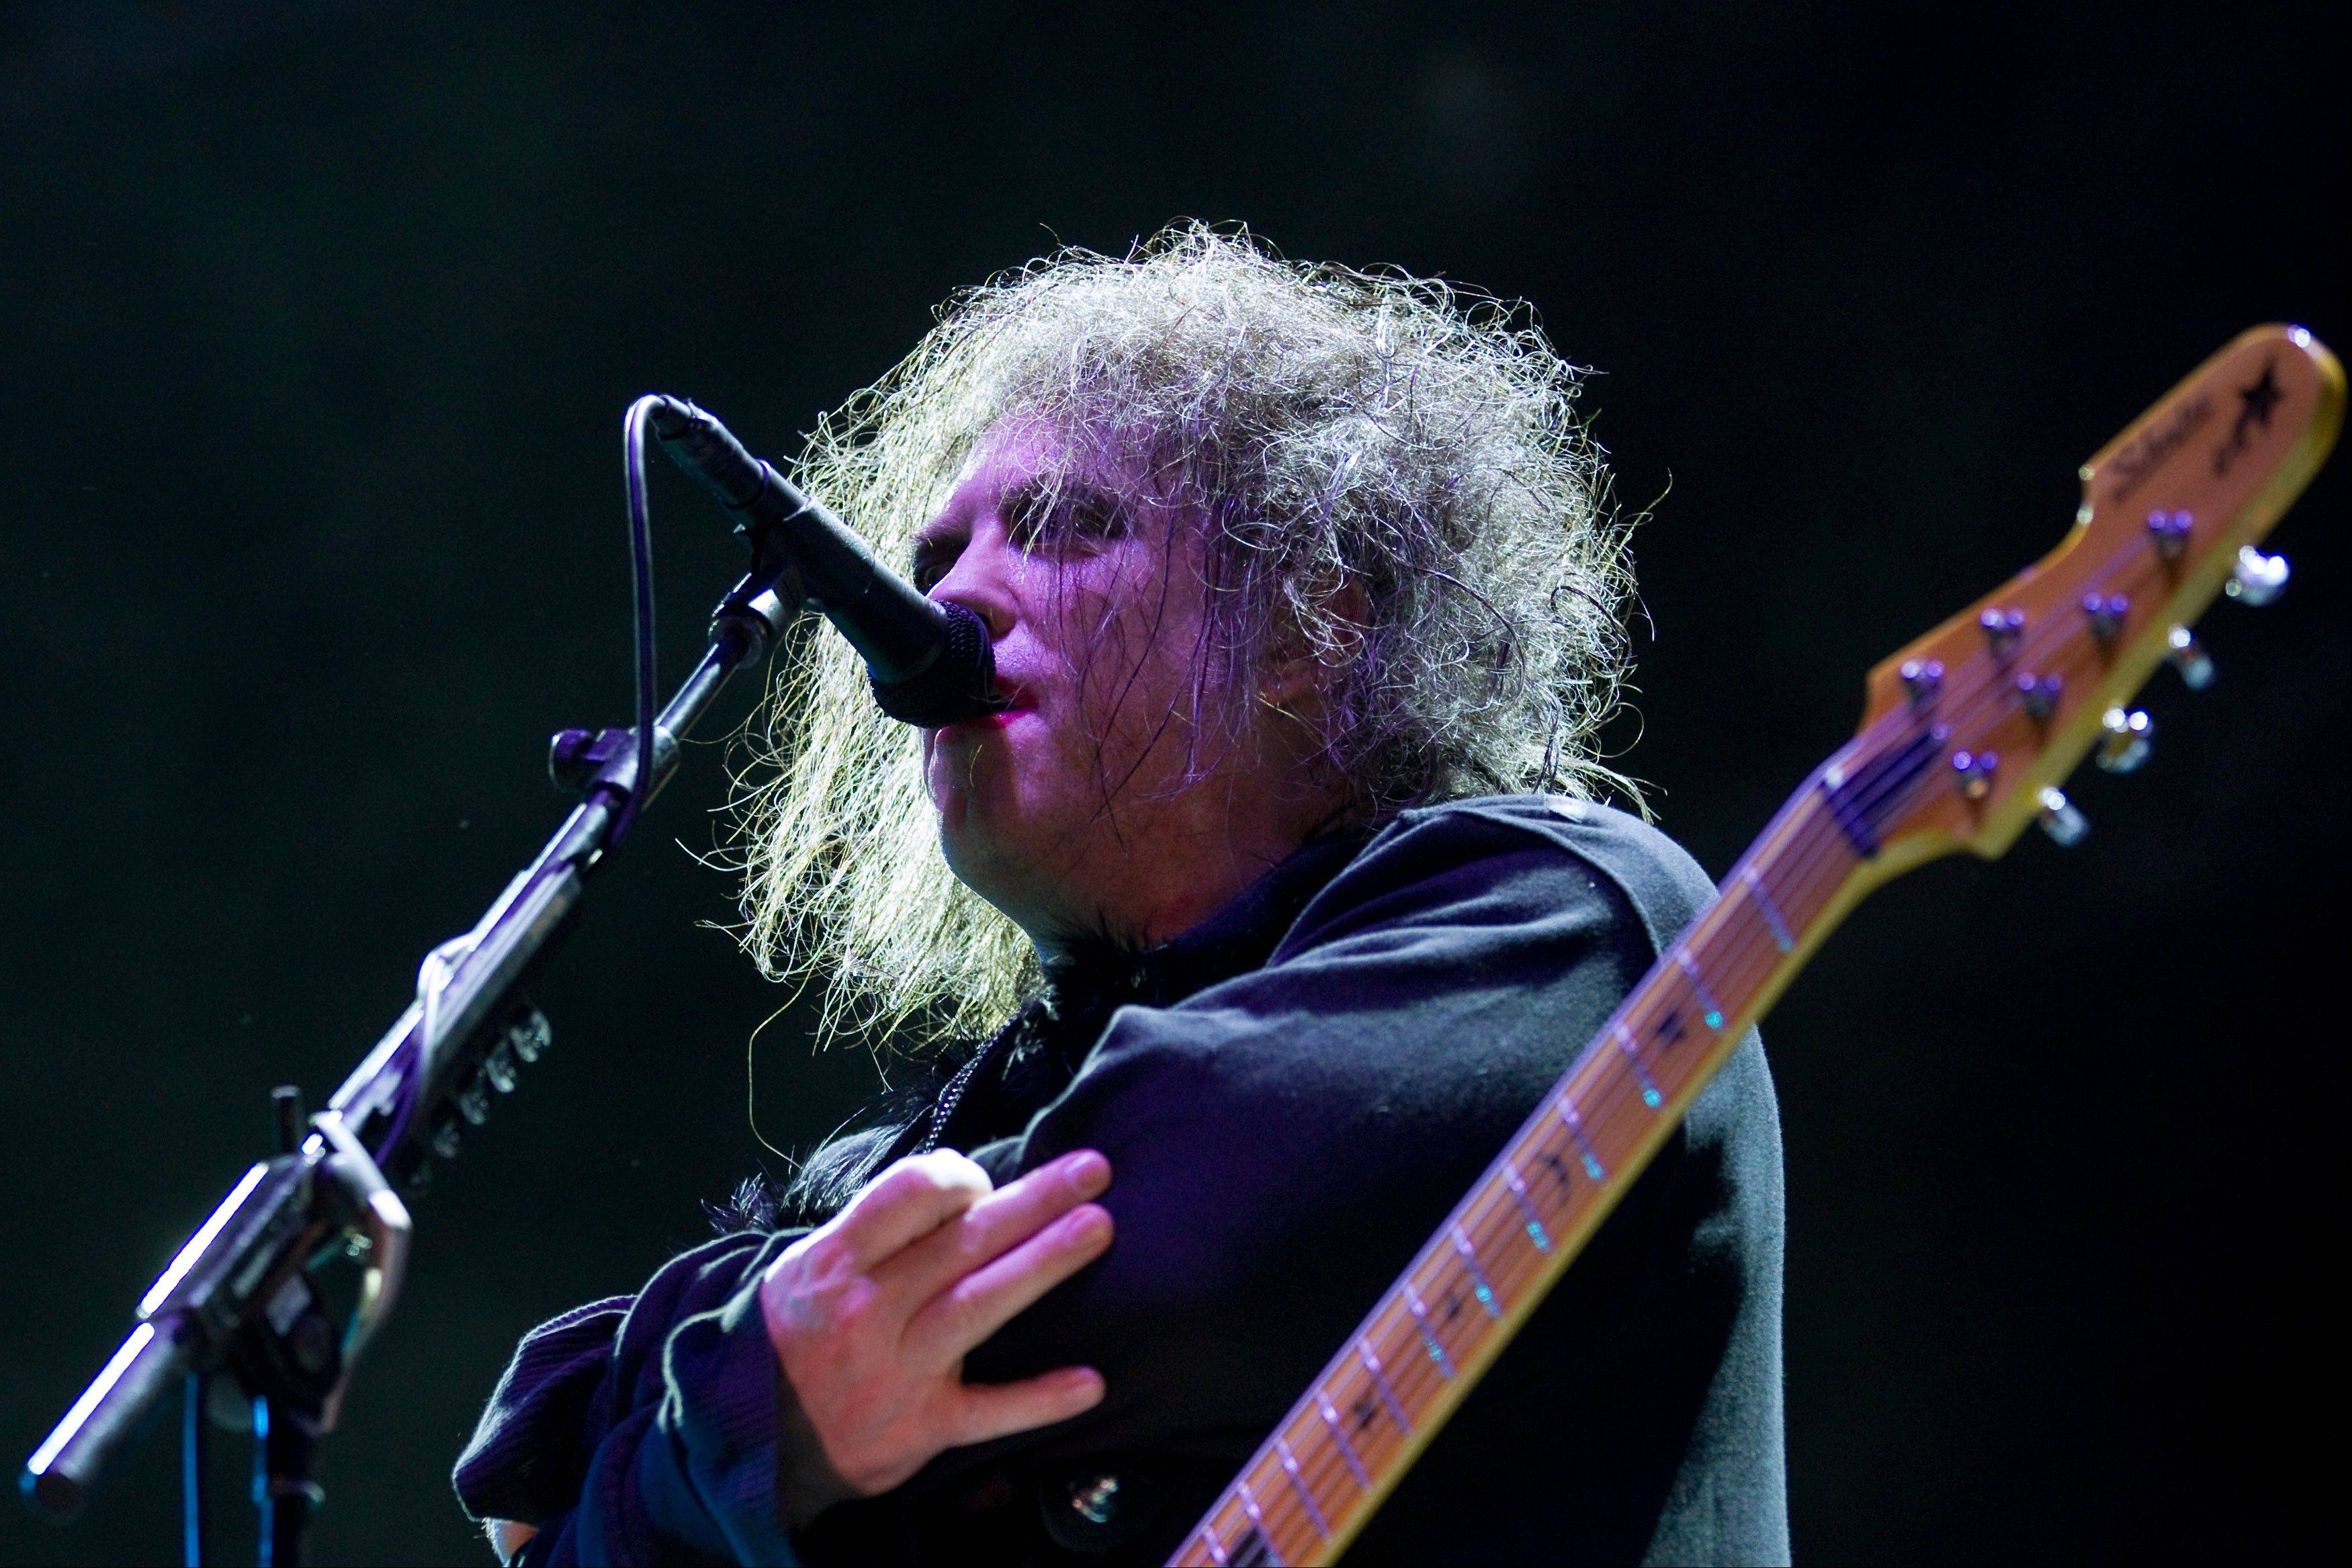 Robert Smith, frontman of English rock band The Cure, performs during a music festival in Lisbon, Portugal. The Cure will headline the Lollapalooza music festival in Chicago's Grant Park in August for the first time in the festival's more than 20-year history.